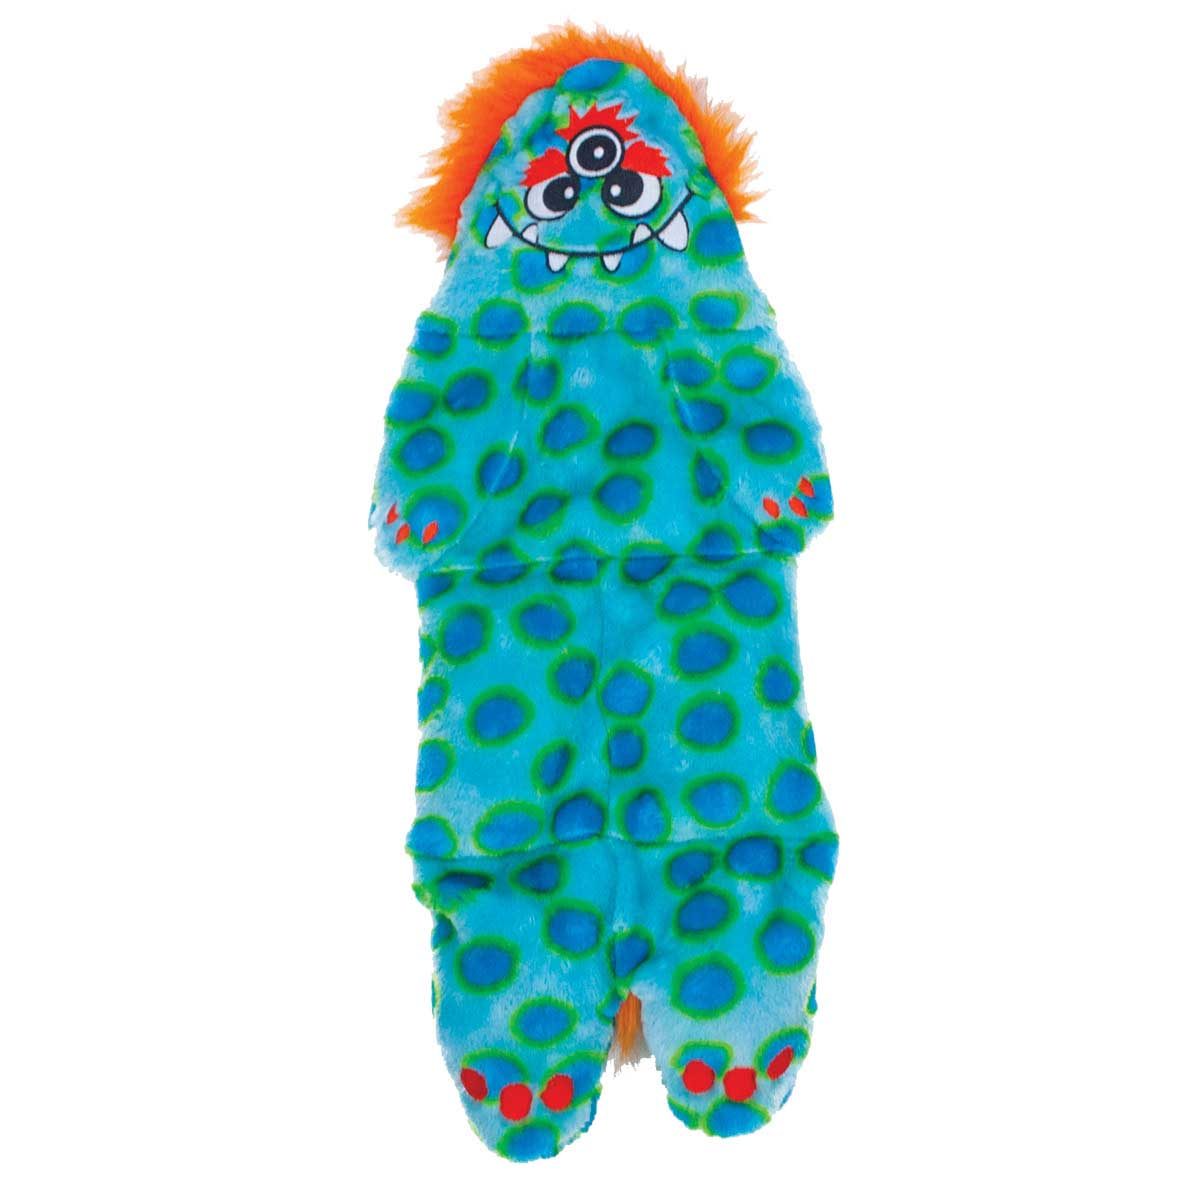 Outward Hound Large Squeakimals Monster 22.5 inches Toy for Dogs